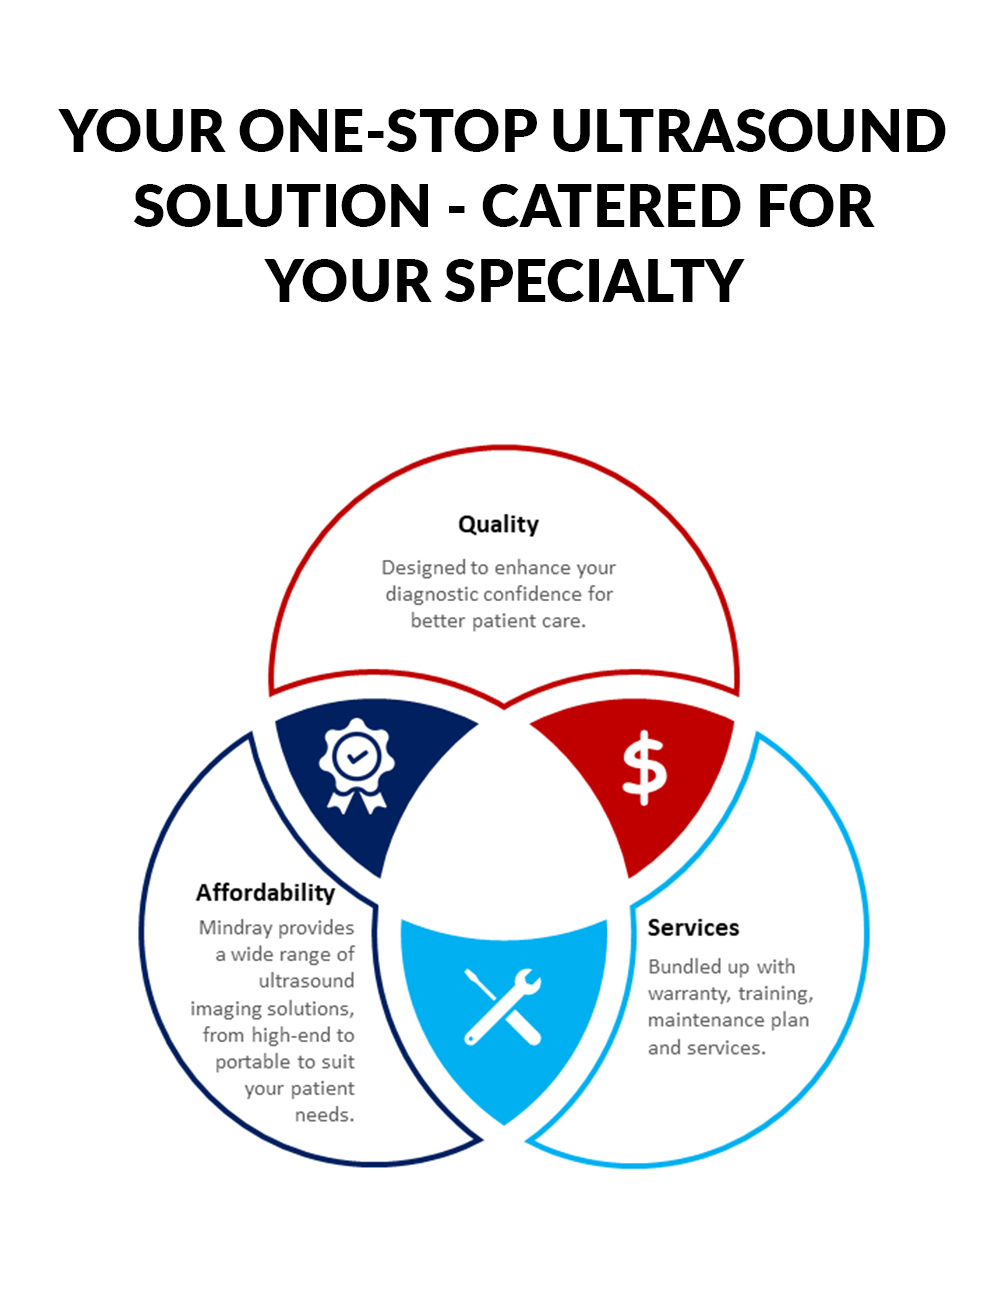 YOUR ONE-STOP ULTRASOUND SOLUTION - CATERED FOR YOUR SPECIALTY